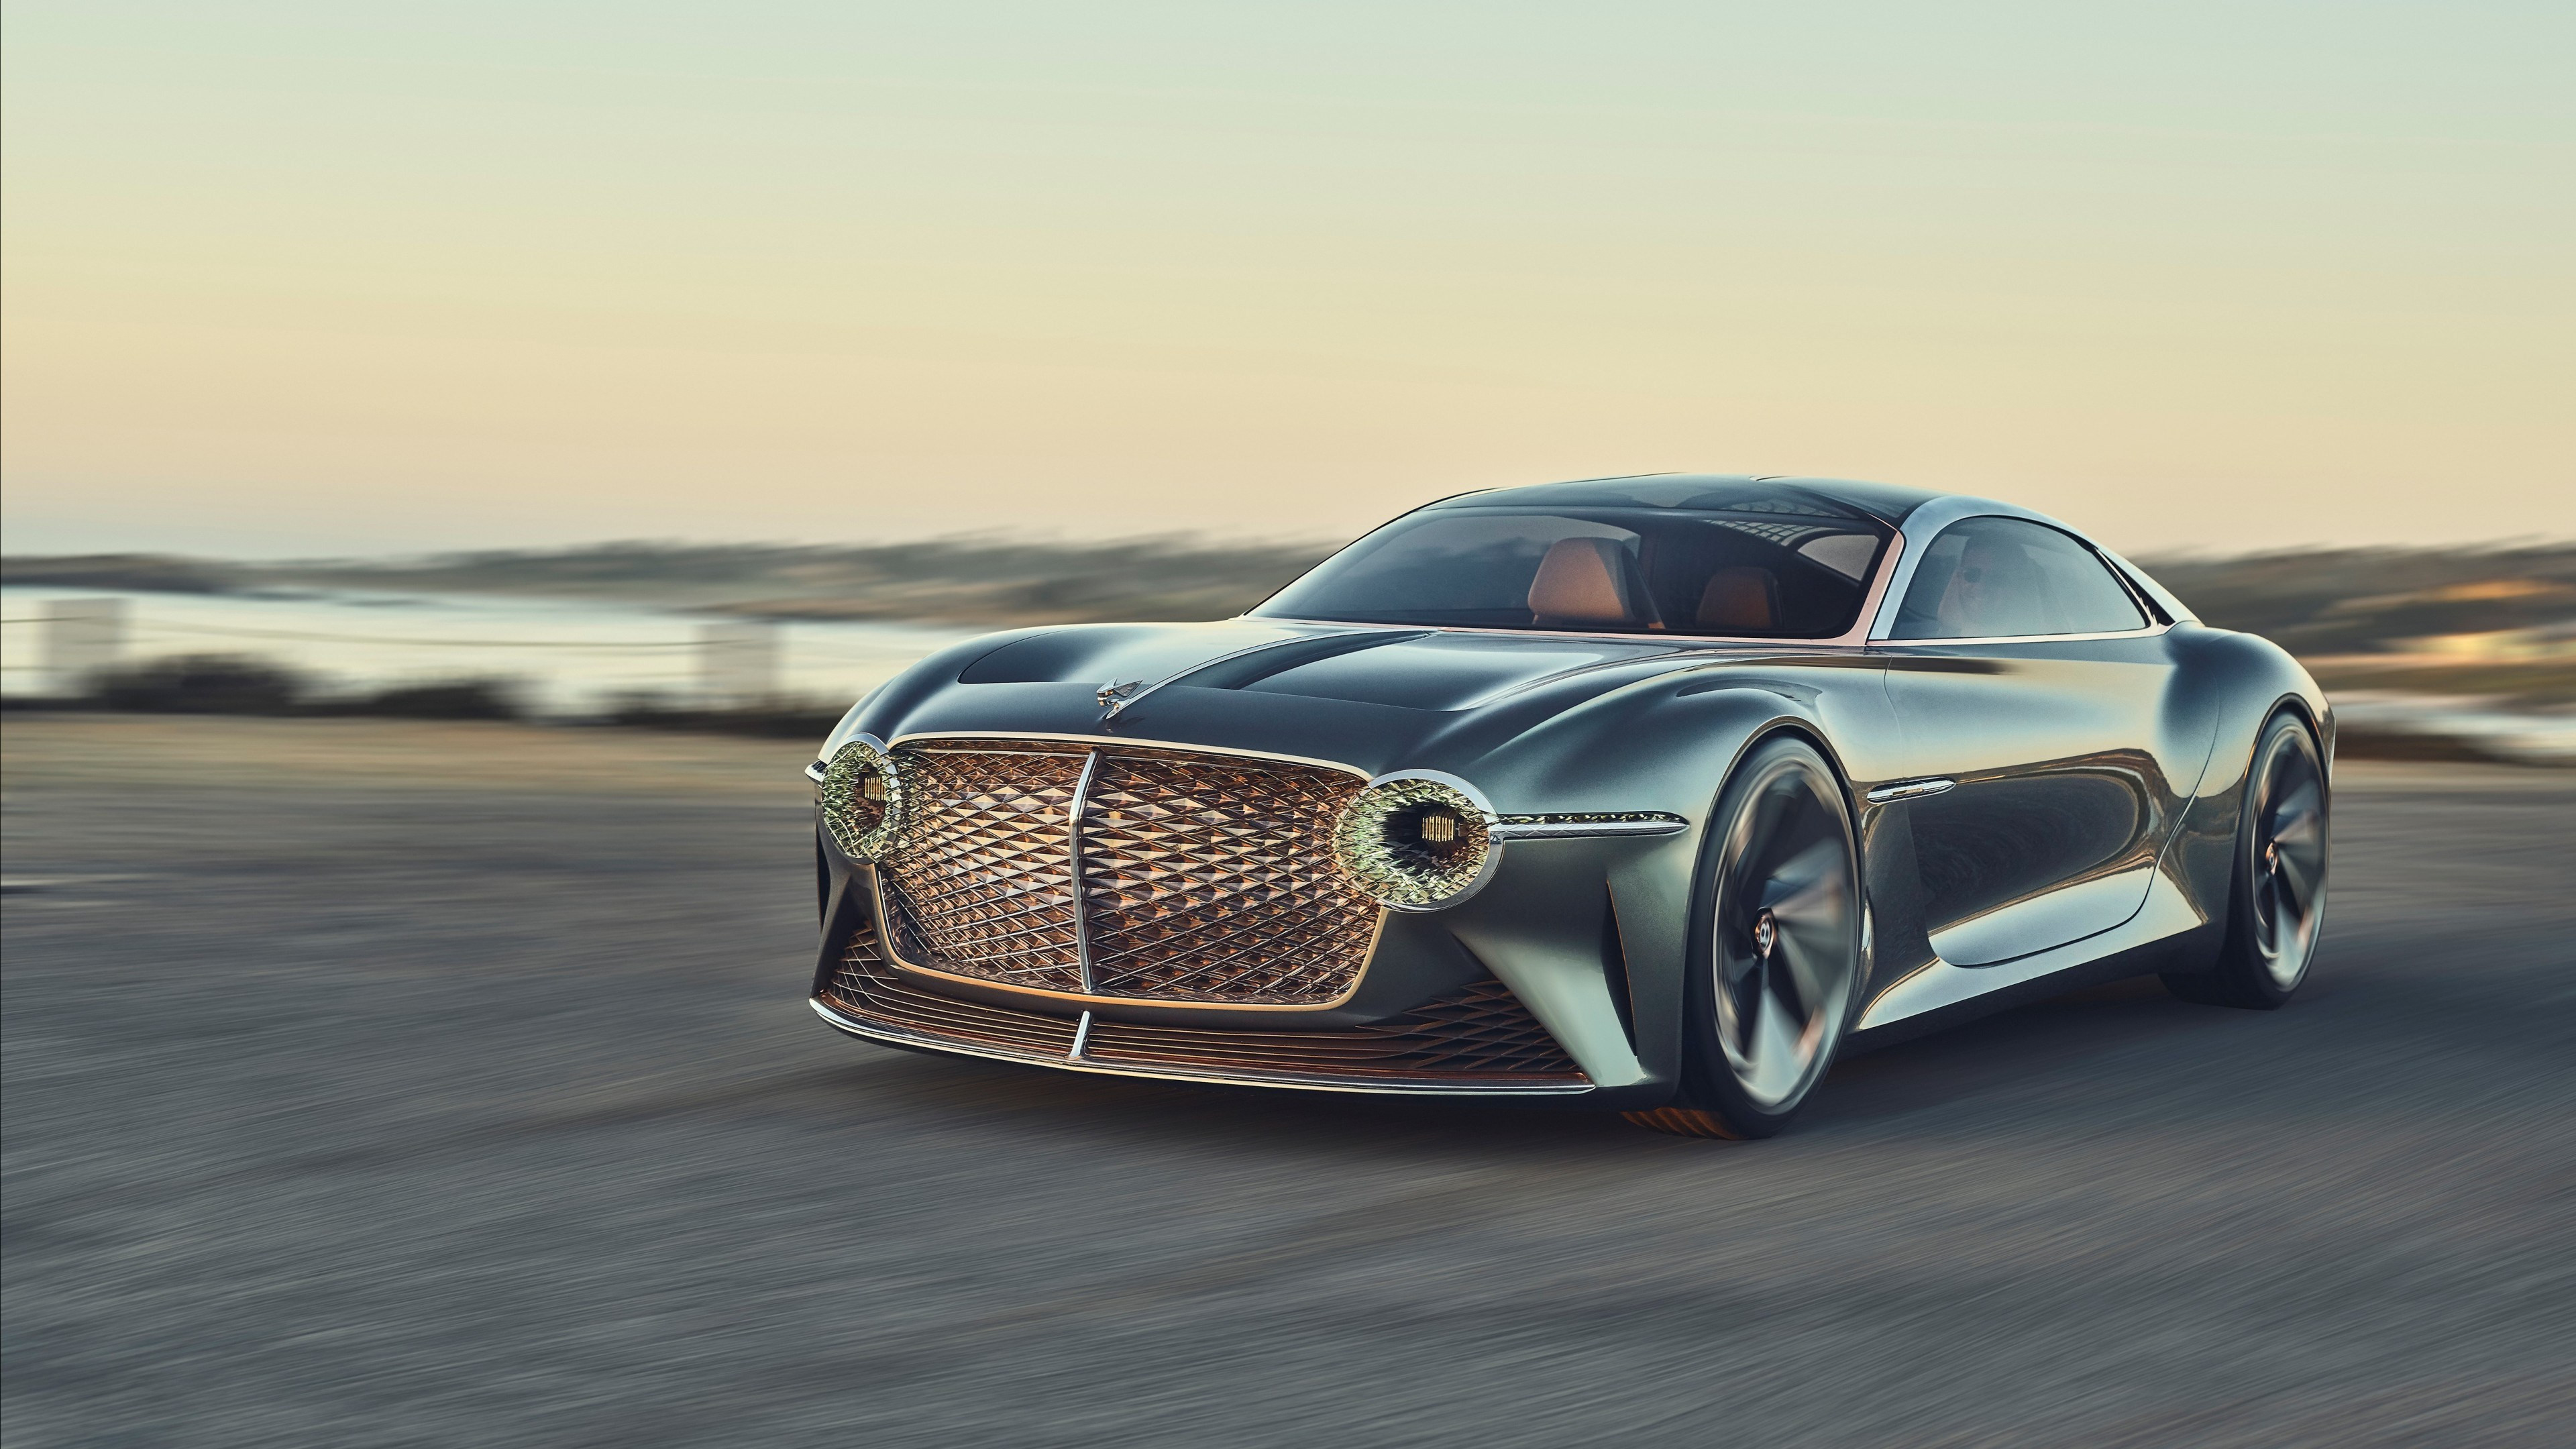 Bentley EXP 100 GT wallpaper 3840x2160